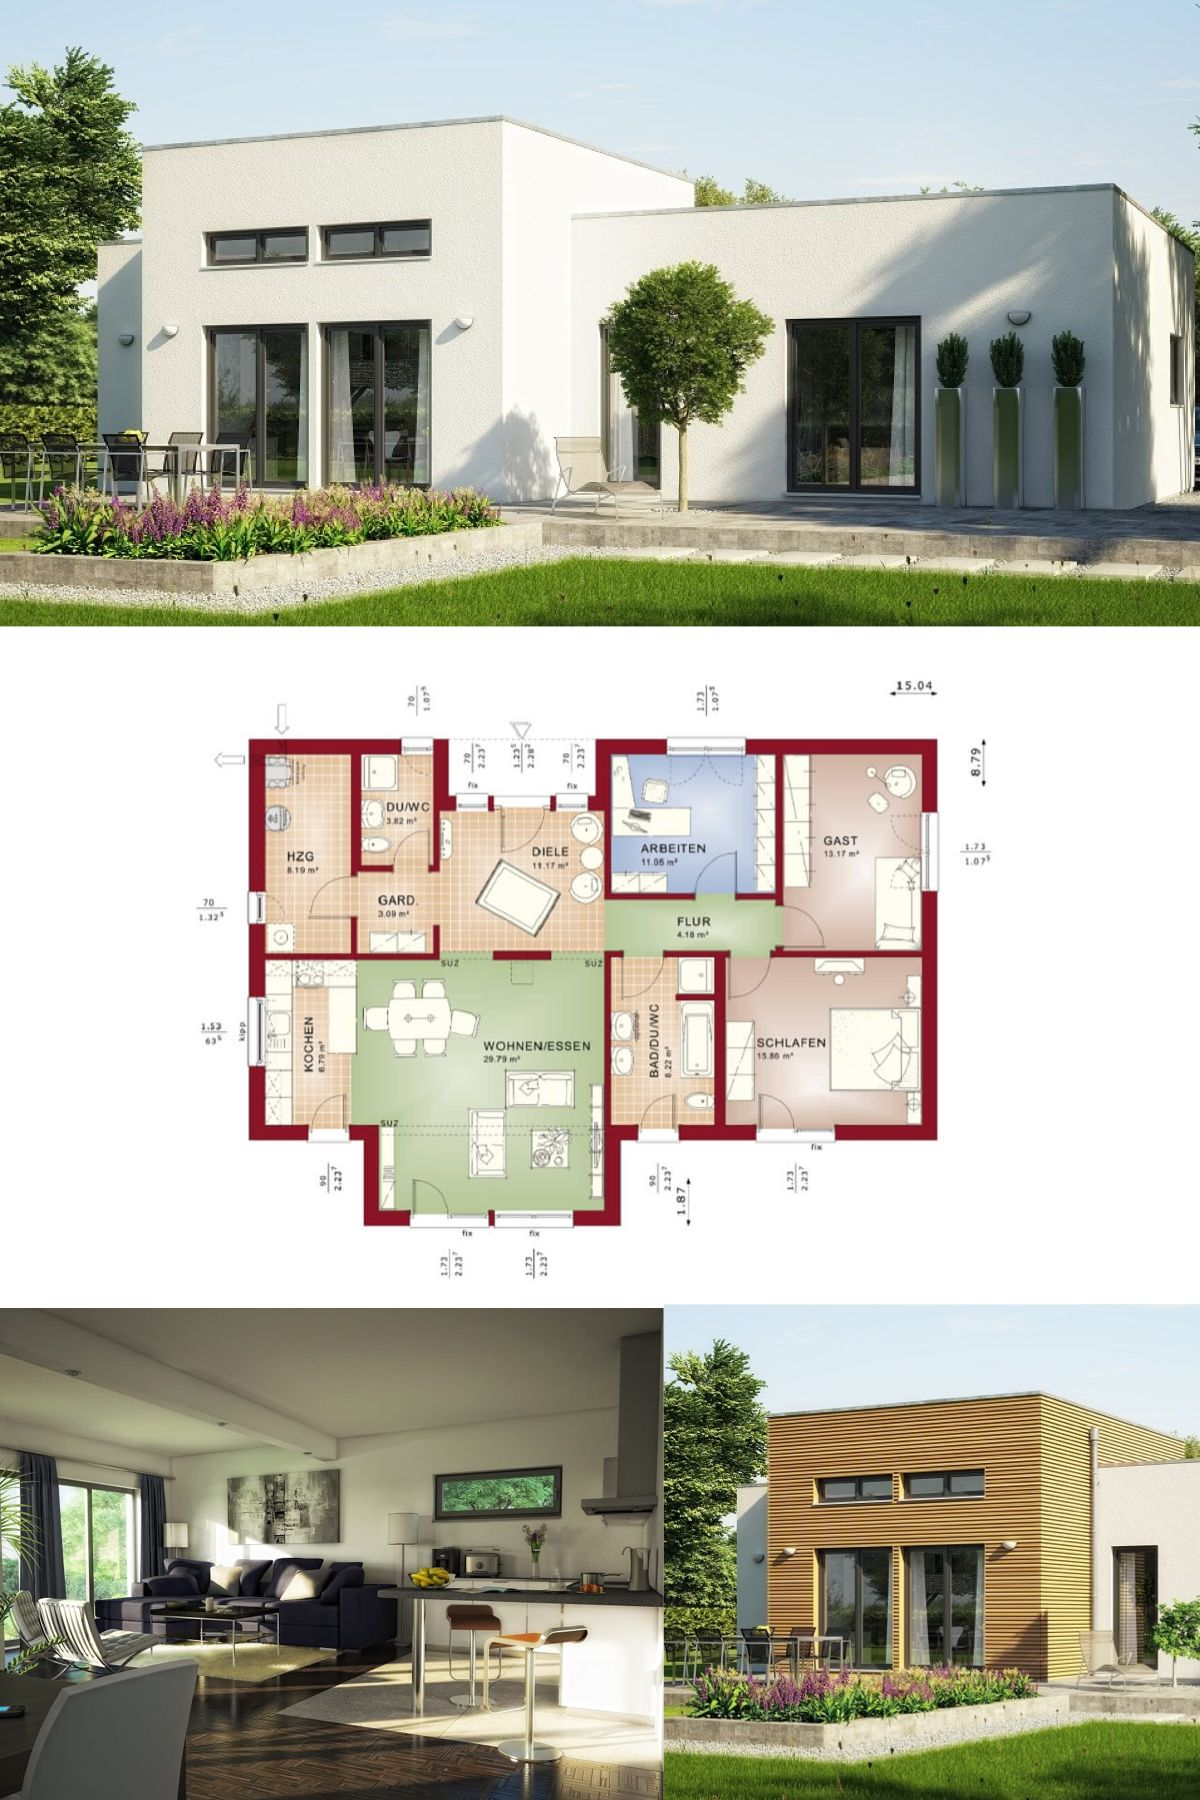 Moderner BUNGALOW Bauhausstil / Haus Evolution 111 V4 Bien